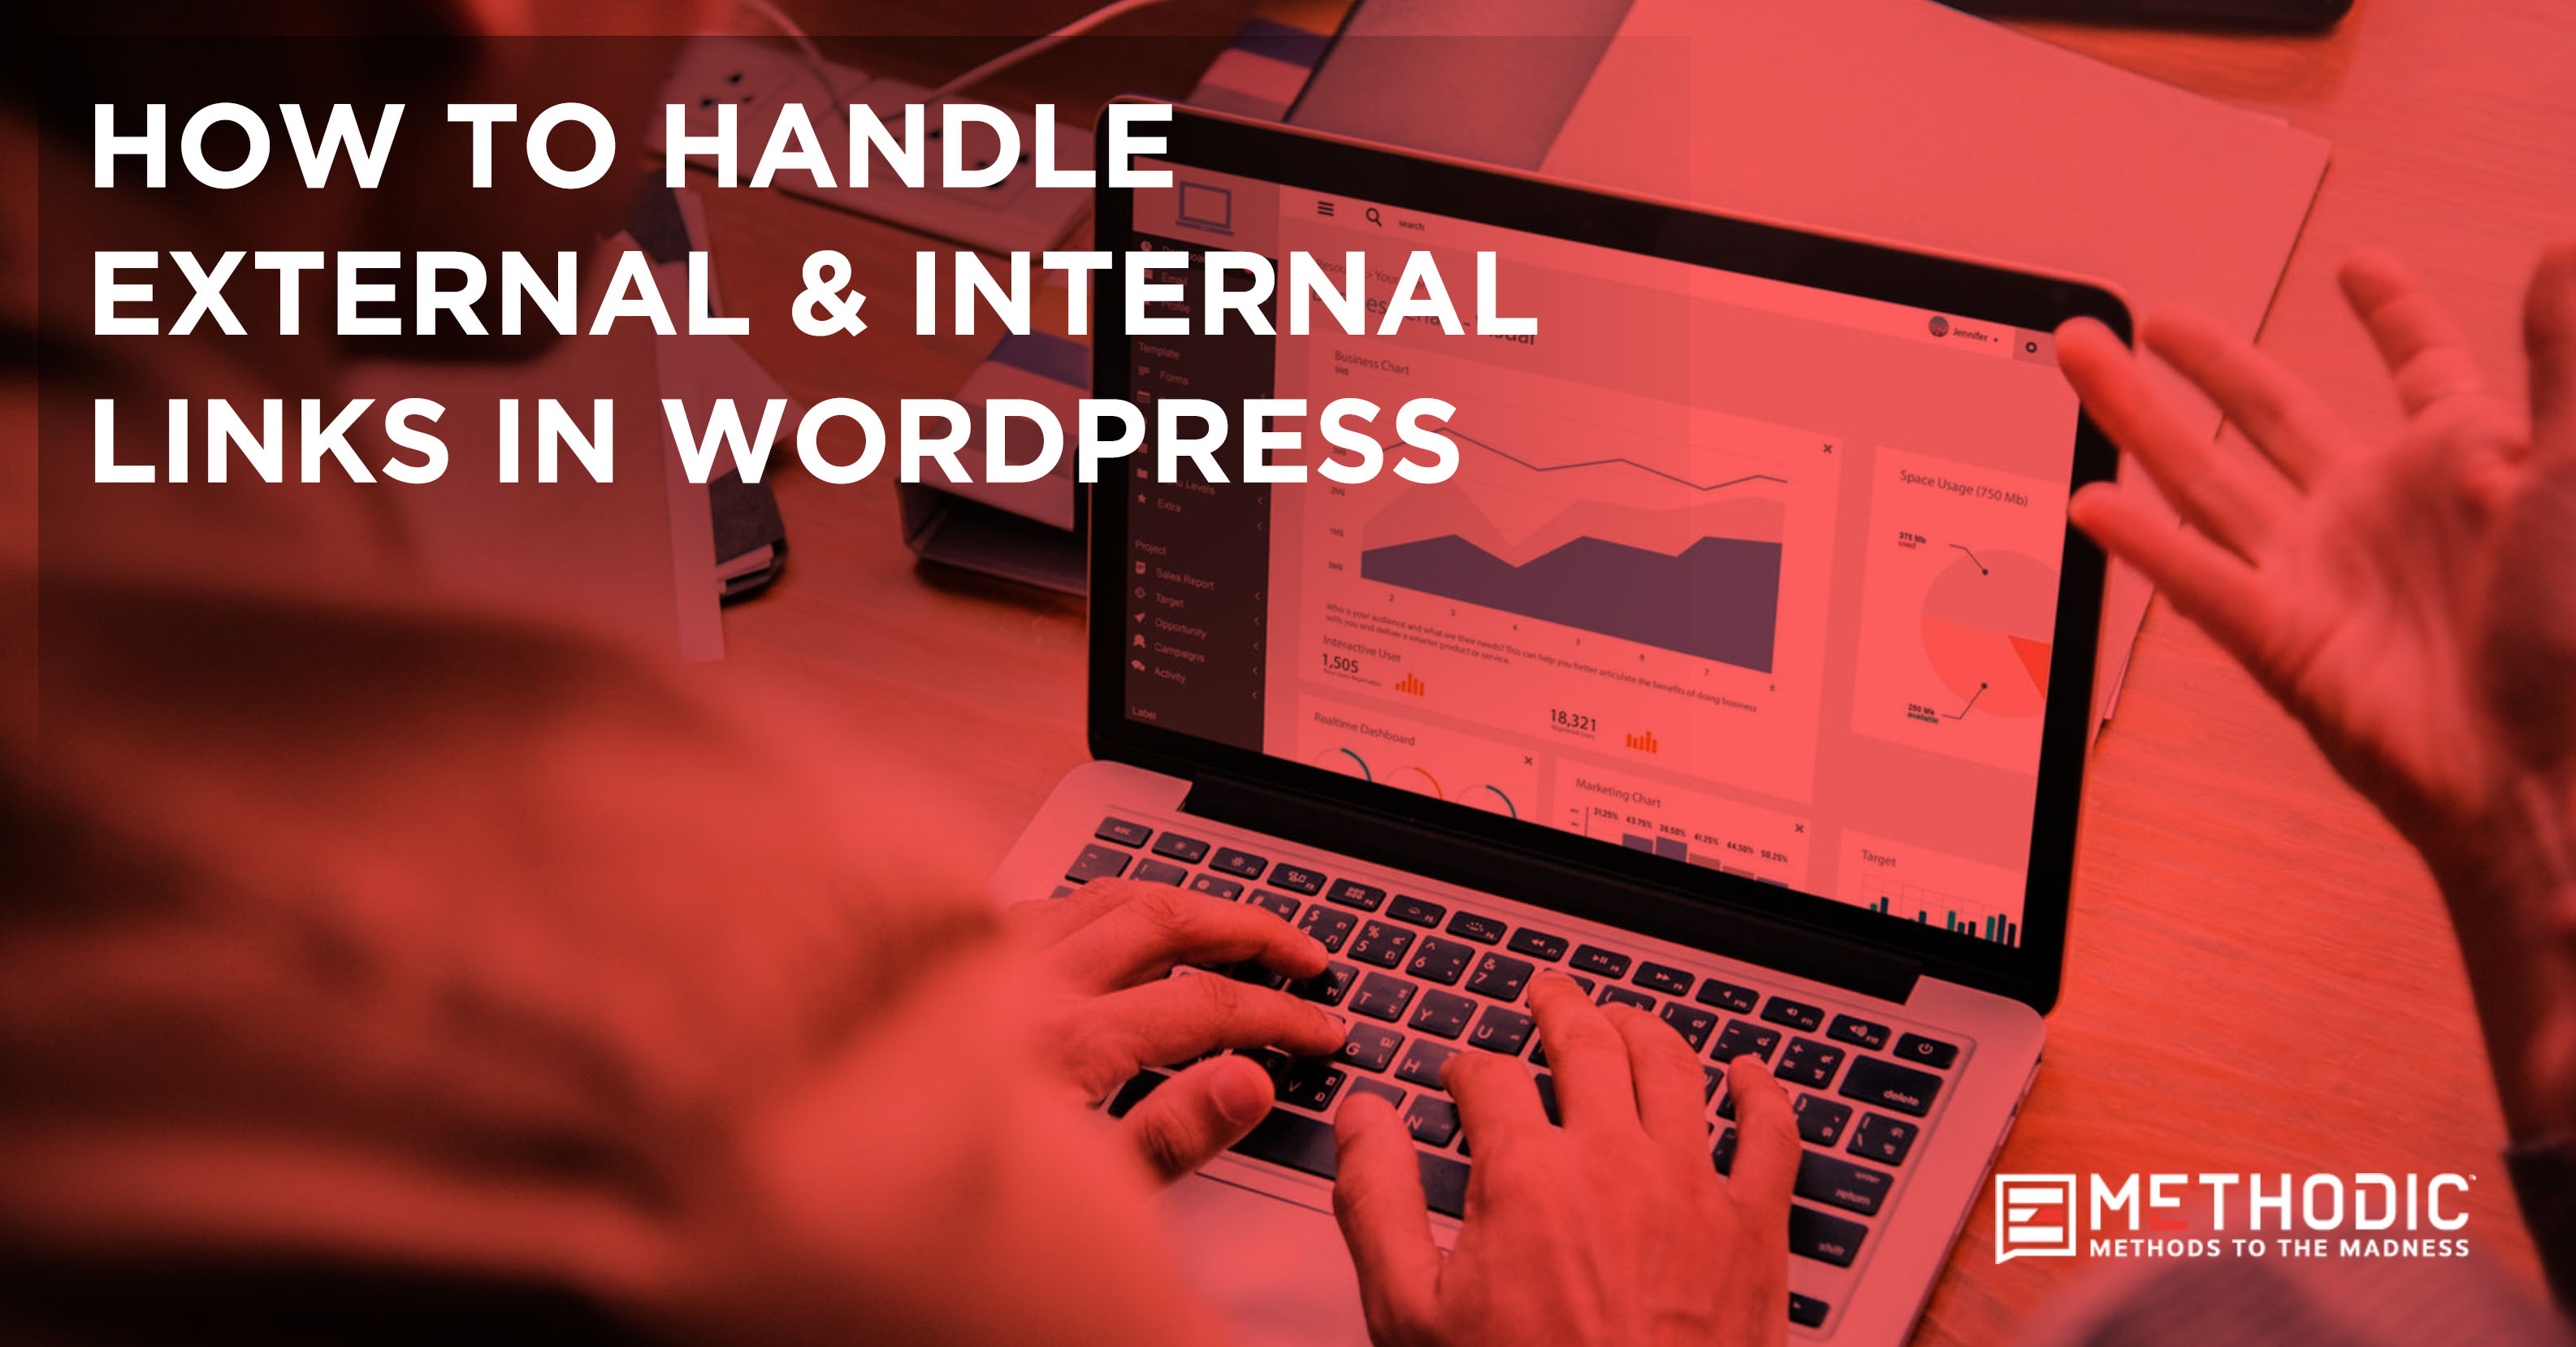 How to Handle External & Internal Links in WordPress